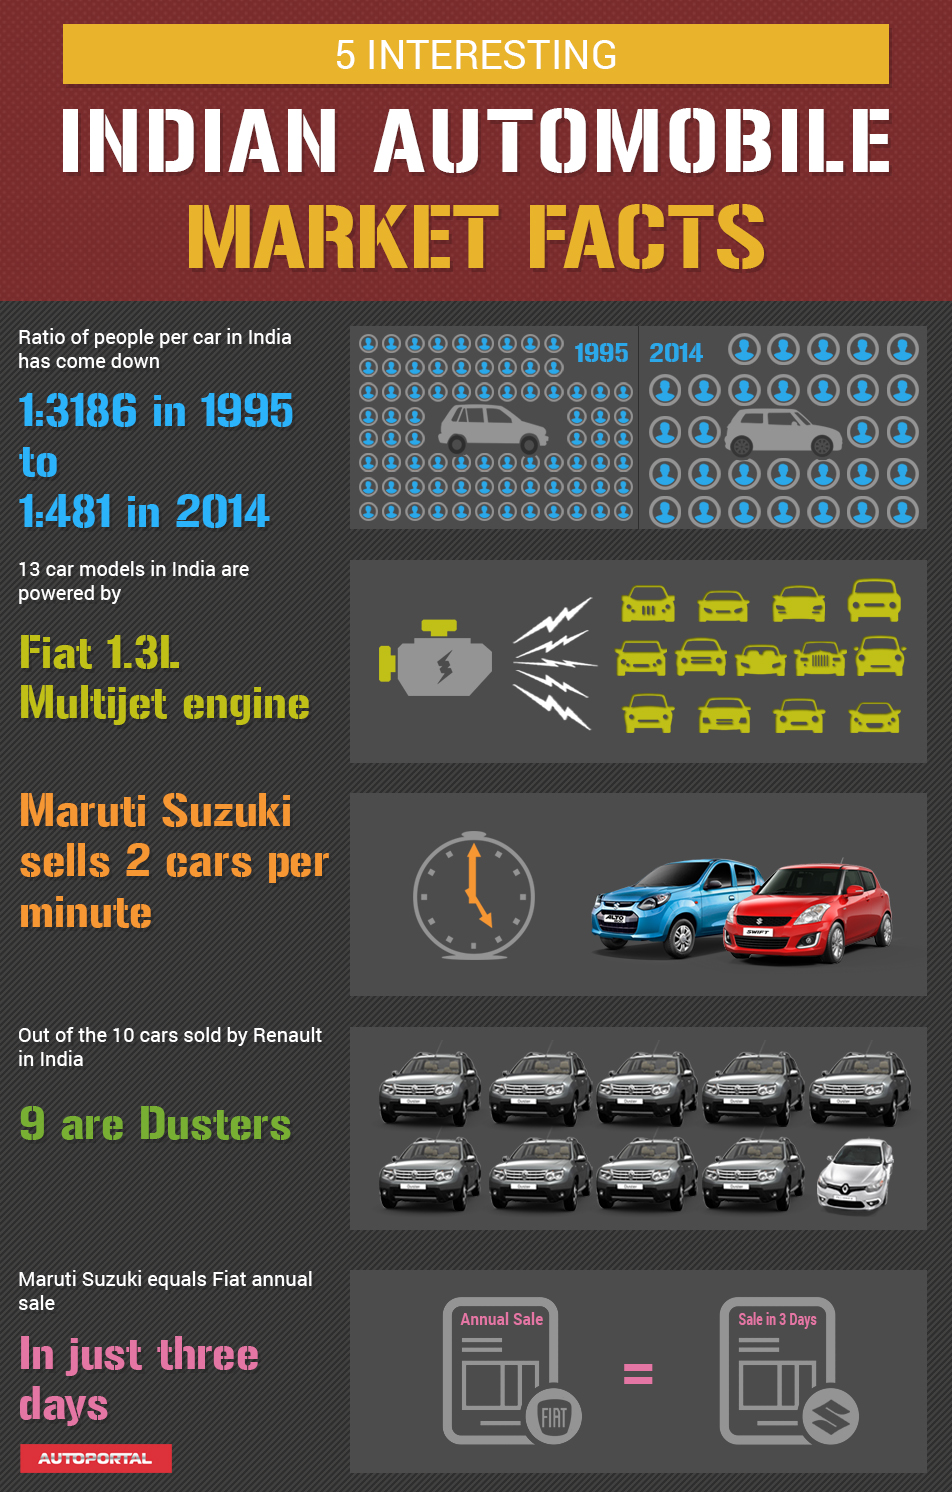 5 interesting Indian Automobile Market facts